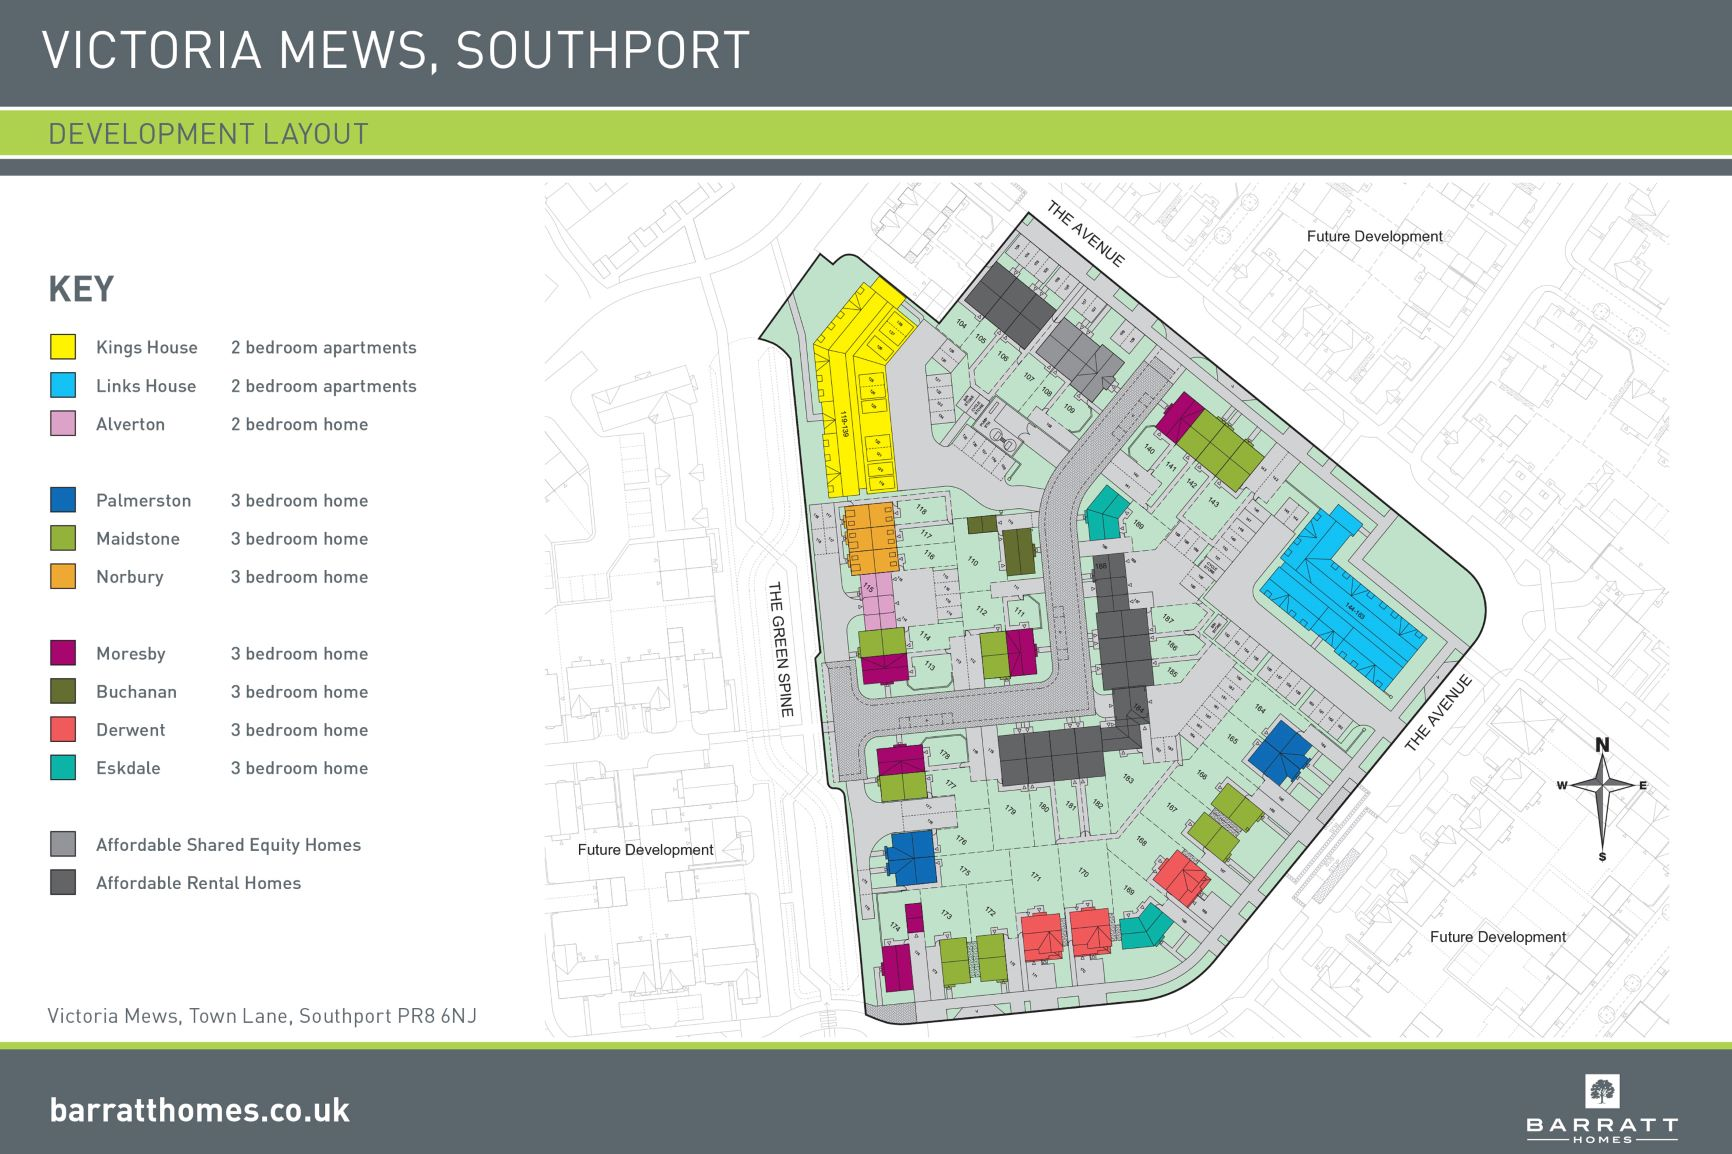 Victoria Mews Site Map